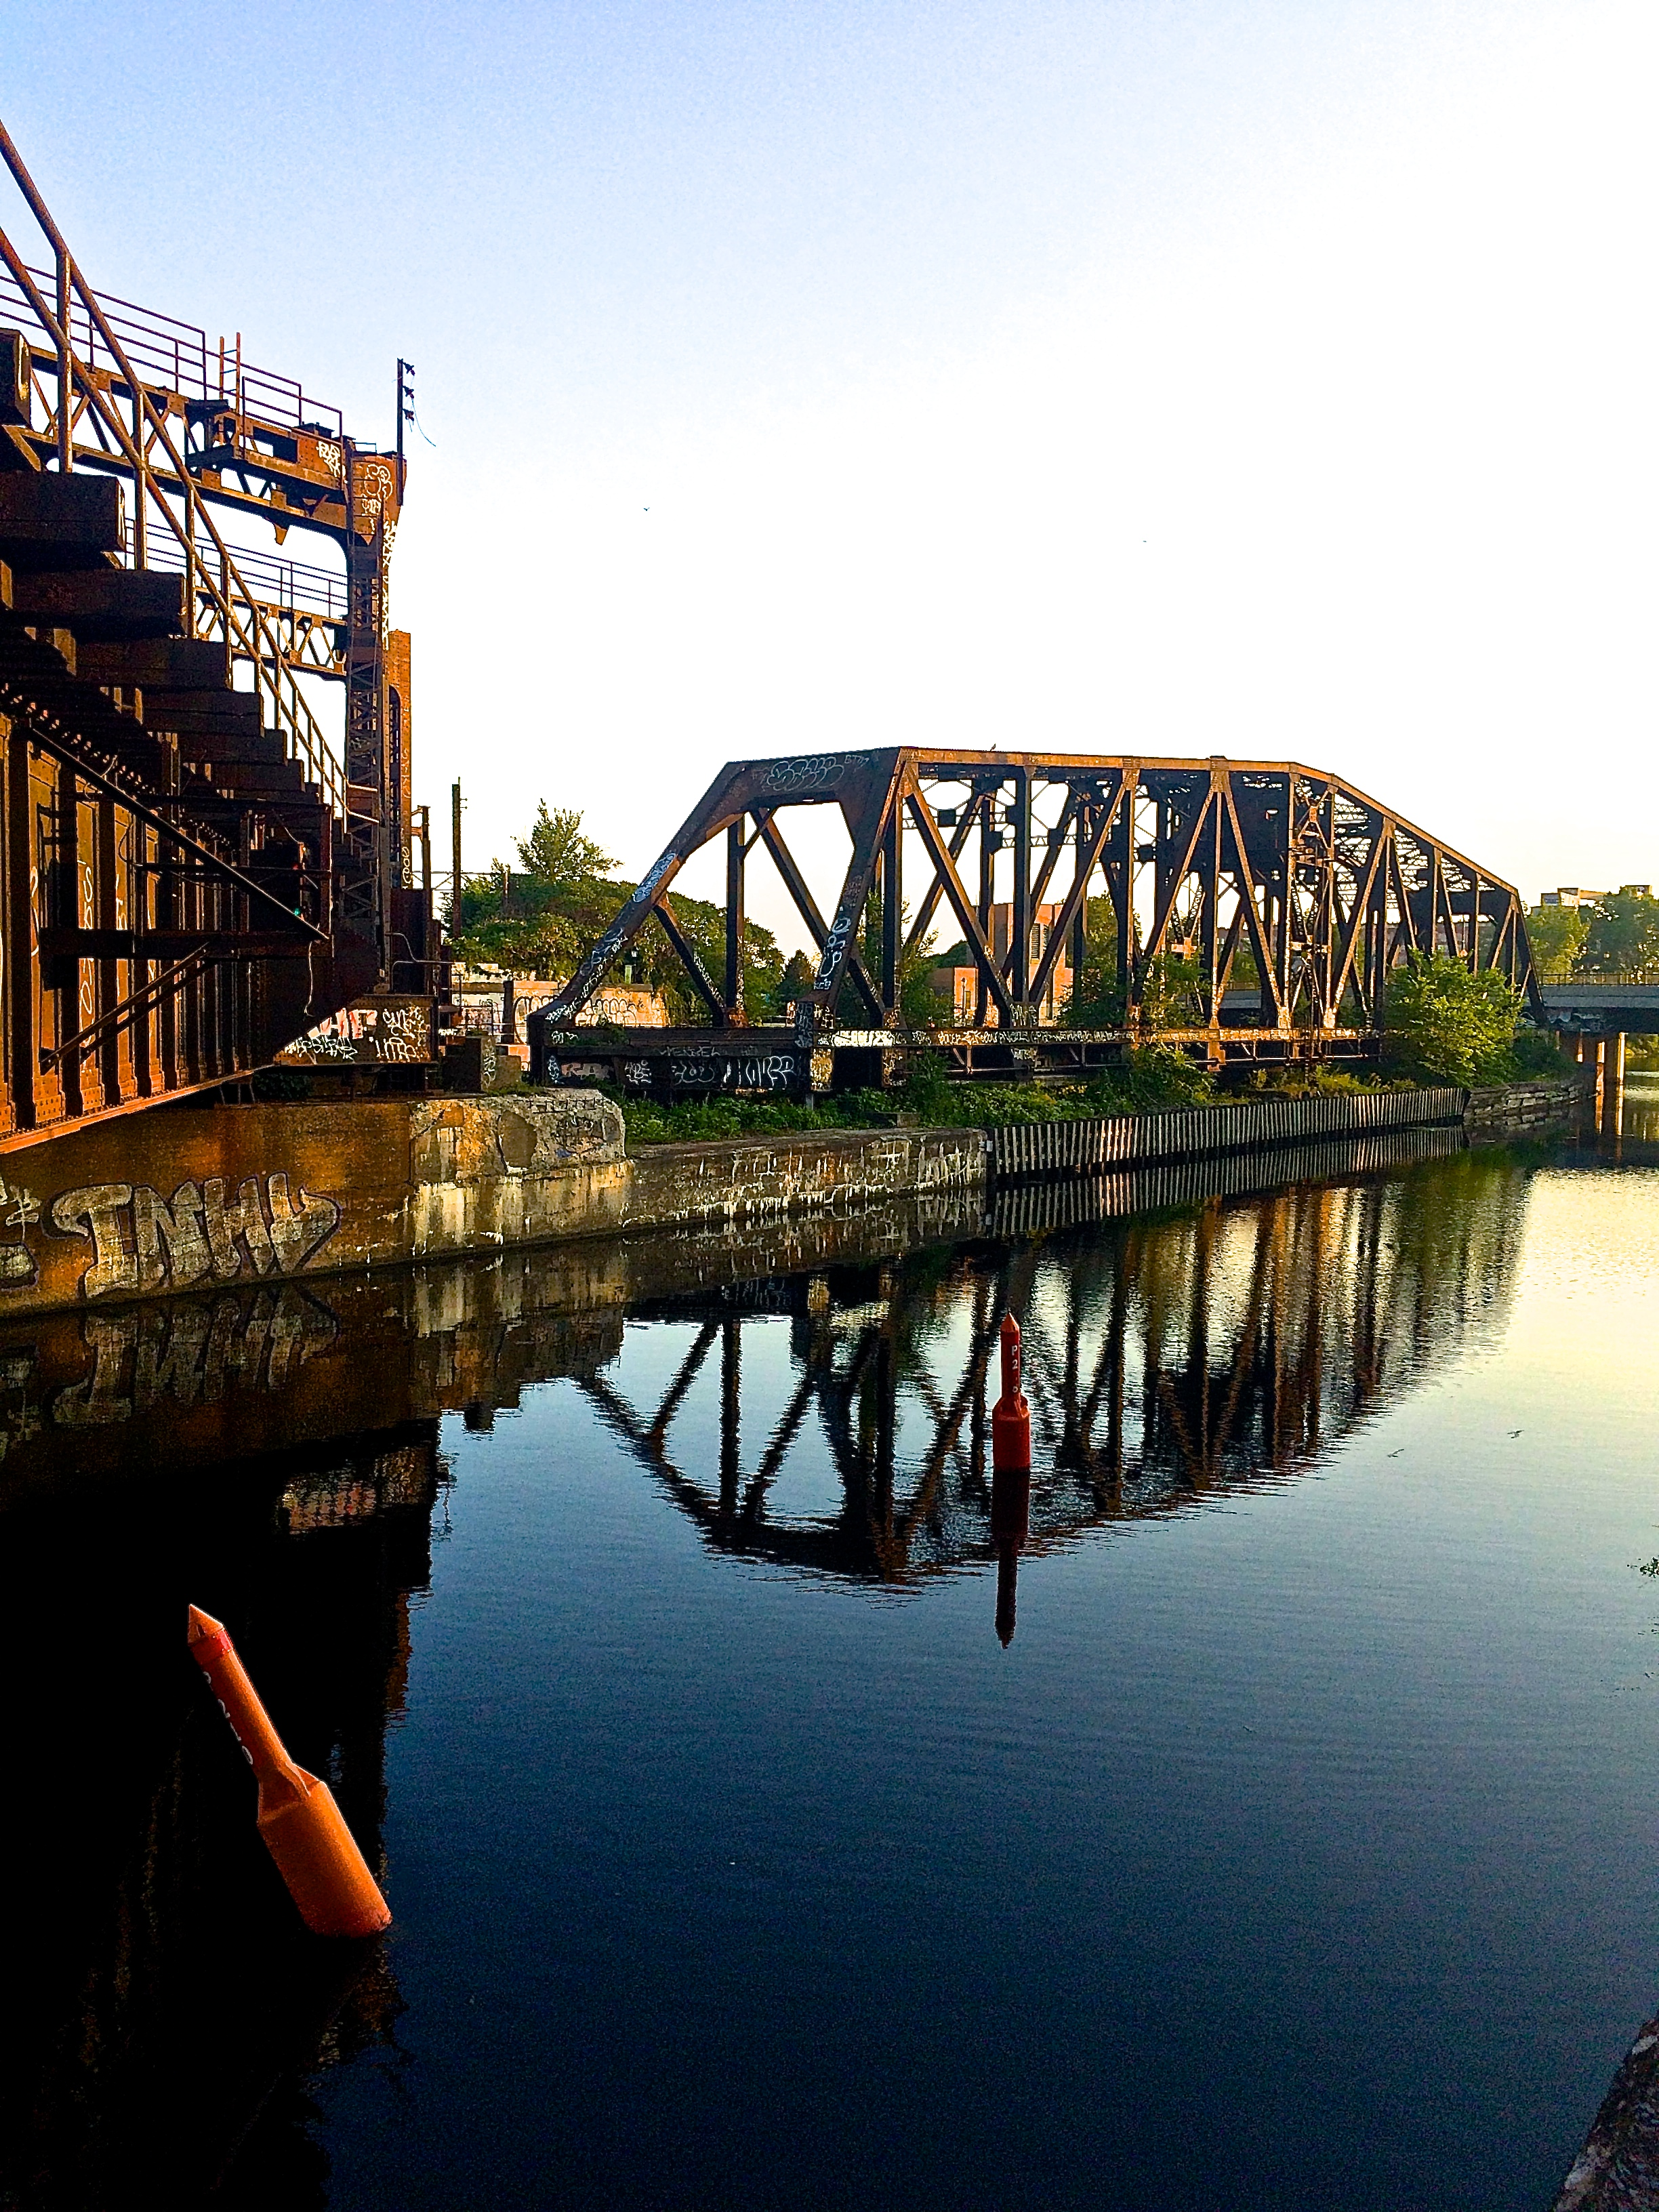 Fixed Position - Lachine Canal